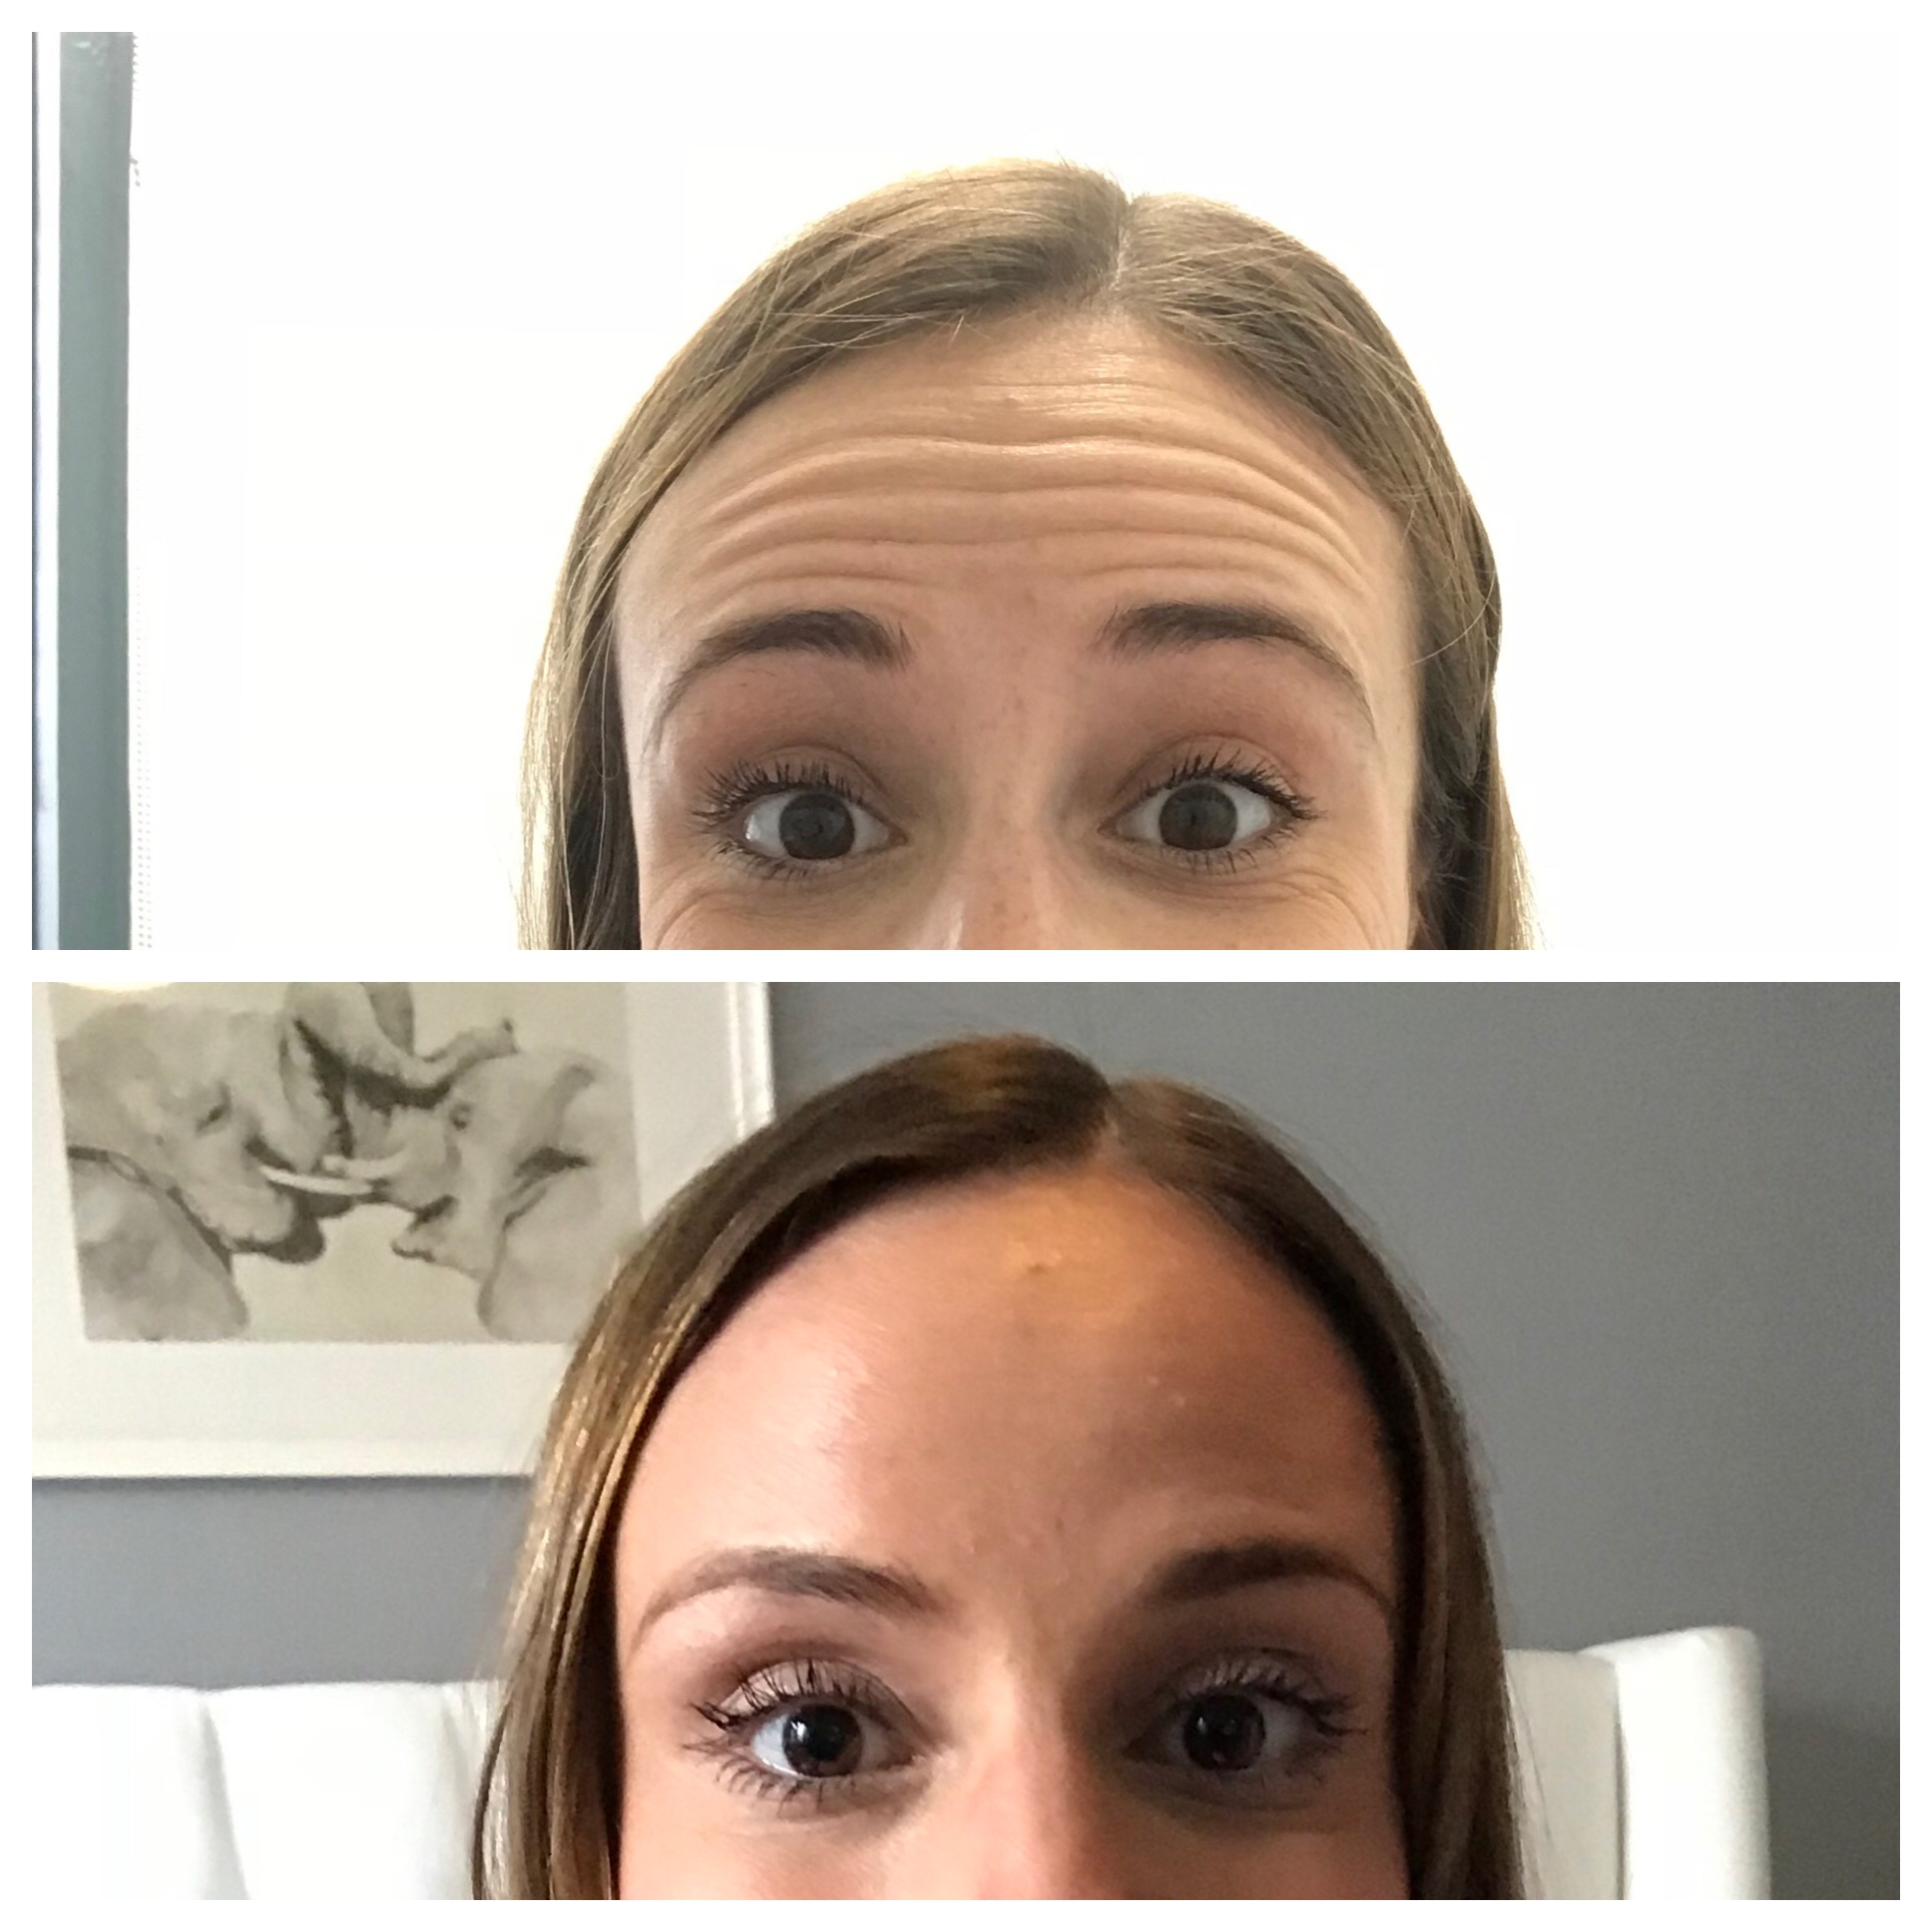 Wrinkle Prevention & Treatment Part 2- Botox! — The Cozy Curator